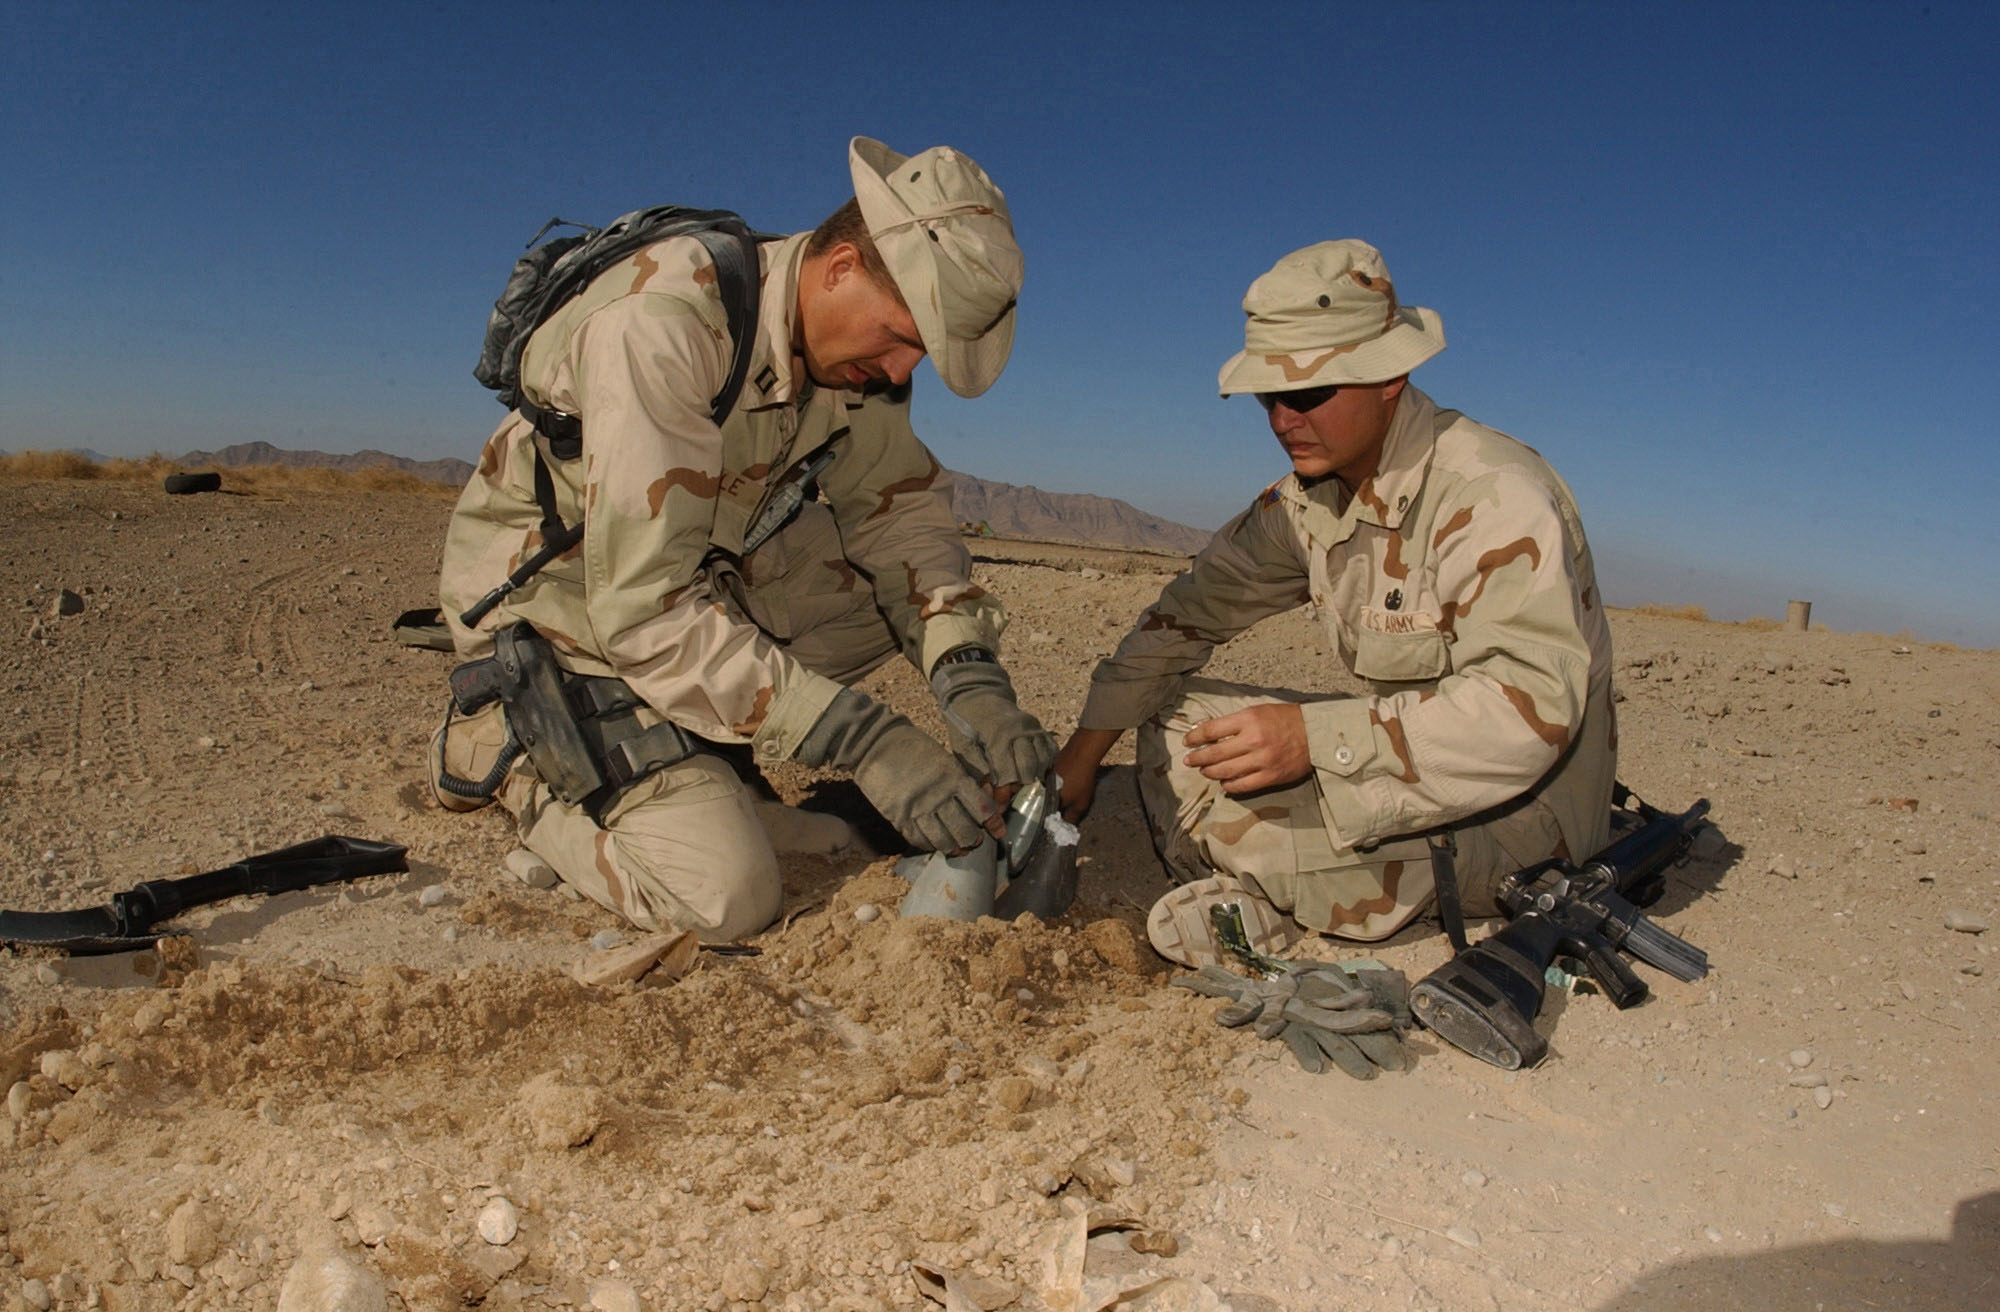 011223-n-2383b-506 eod at work in afghanistan.jpg